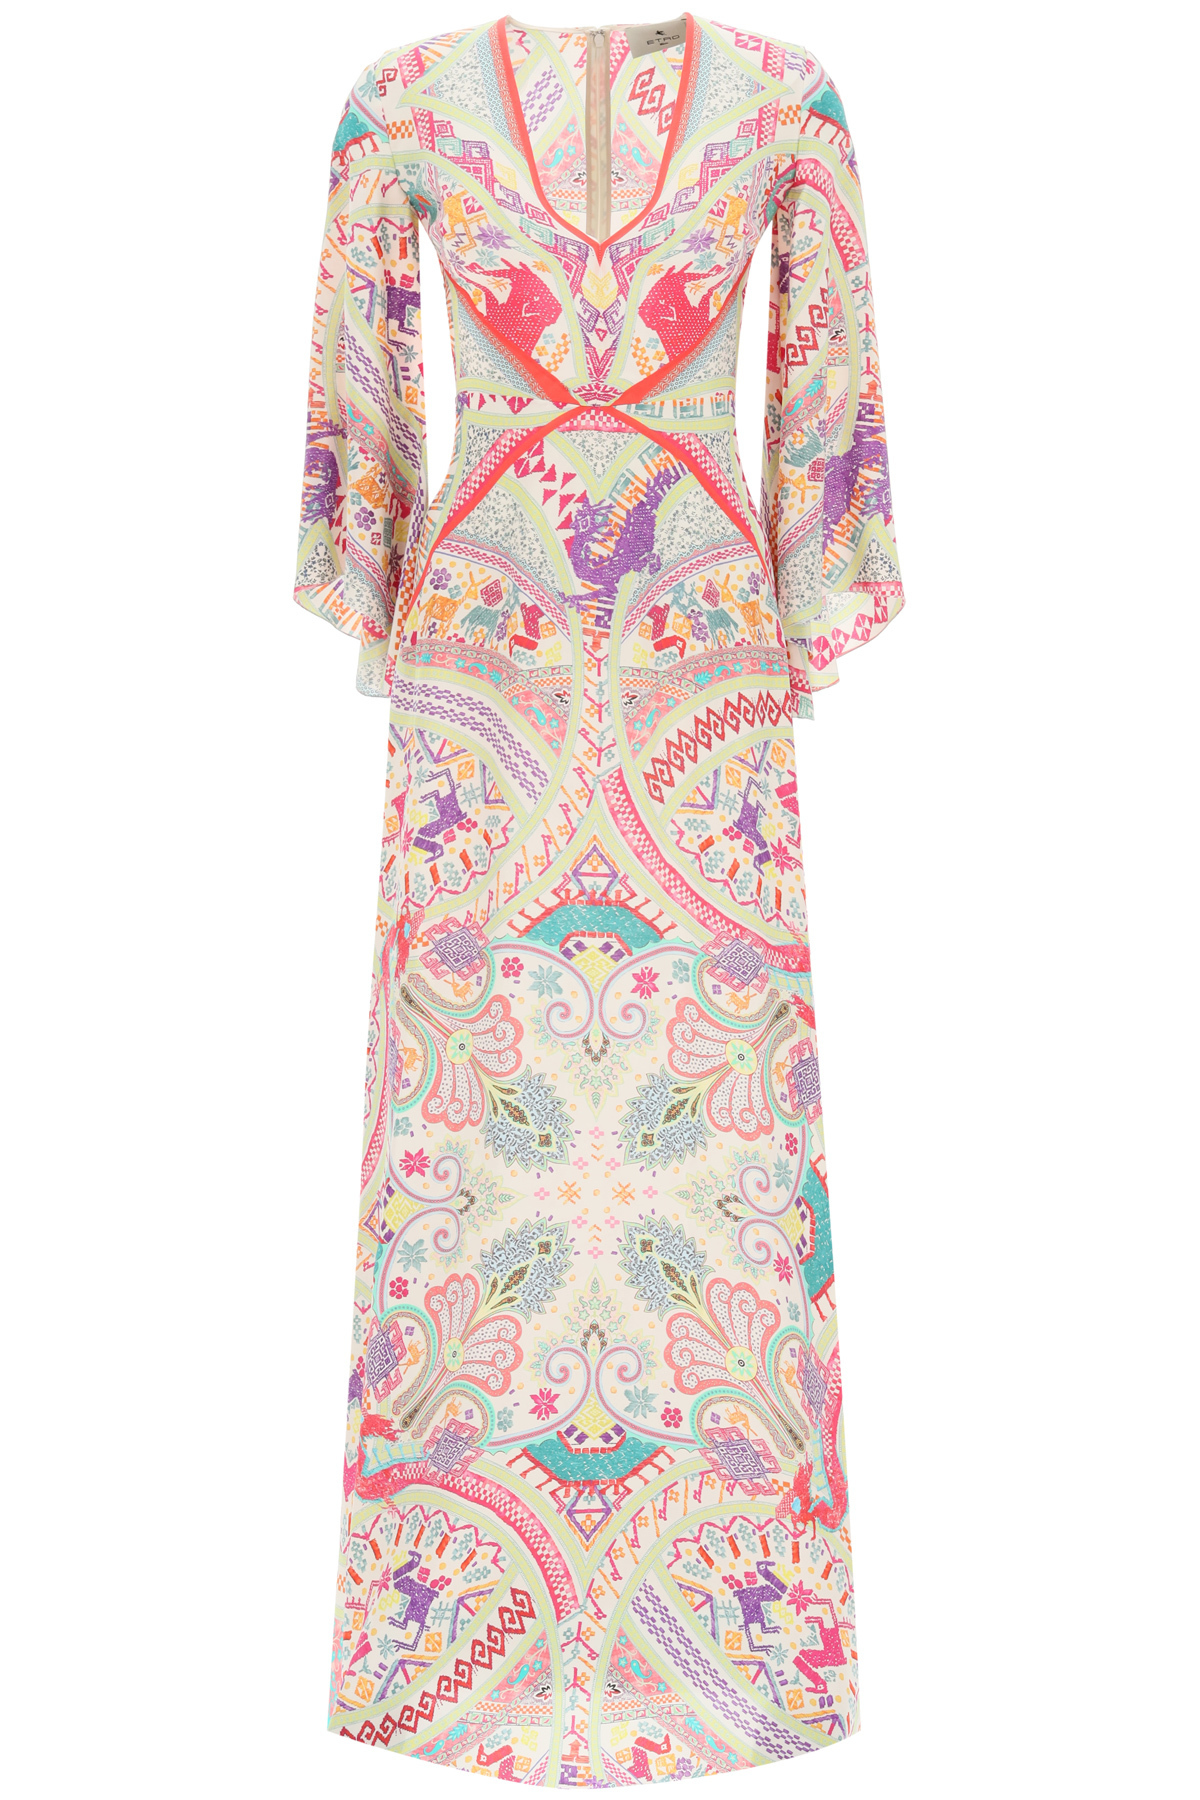 ETRO IDRA DRESS ETHNIC PAISLEY PRINT